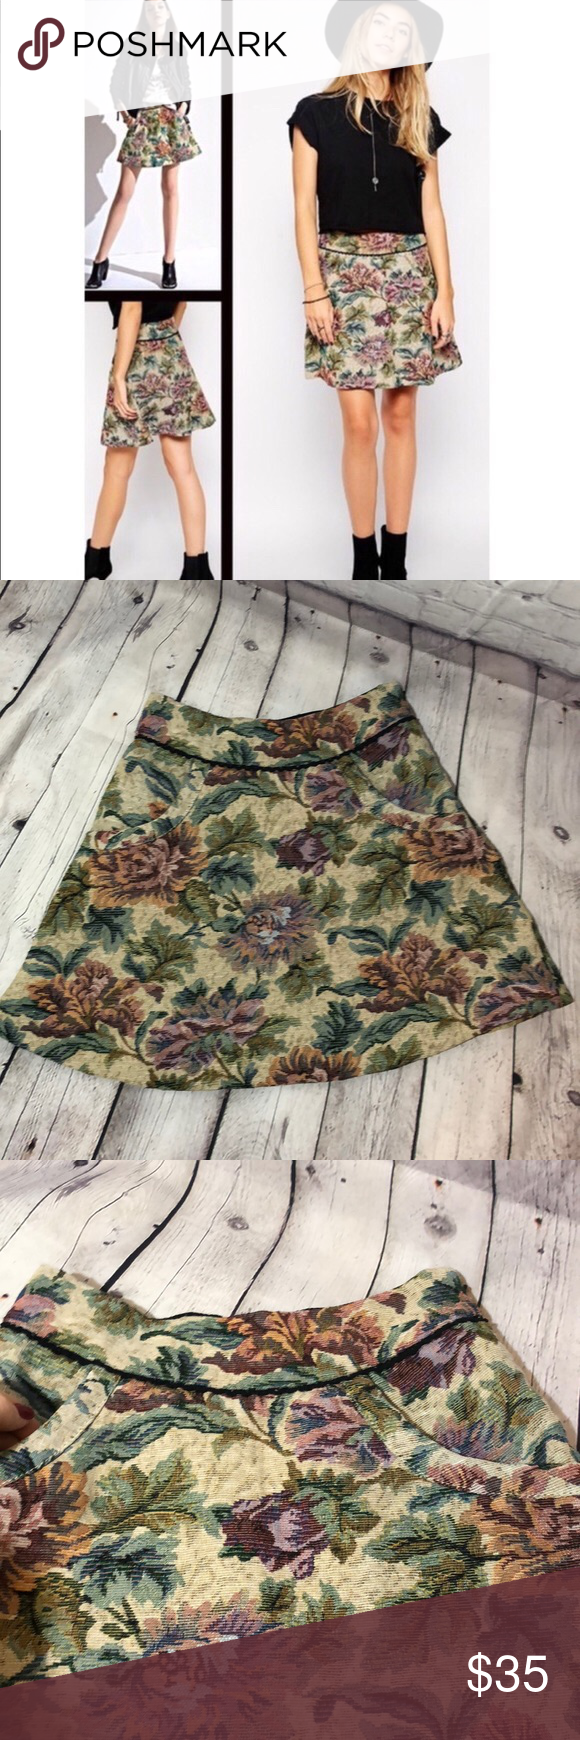 35aac30f8 Free People Tapestry Mini Skirt Floral Free People tapestry mini skirt.  Floral print with beige